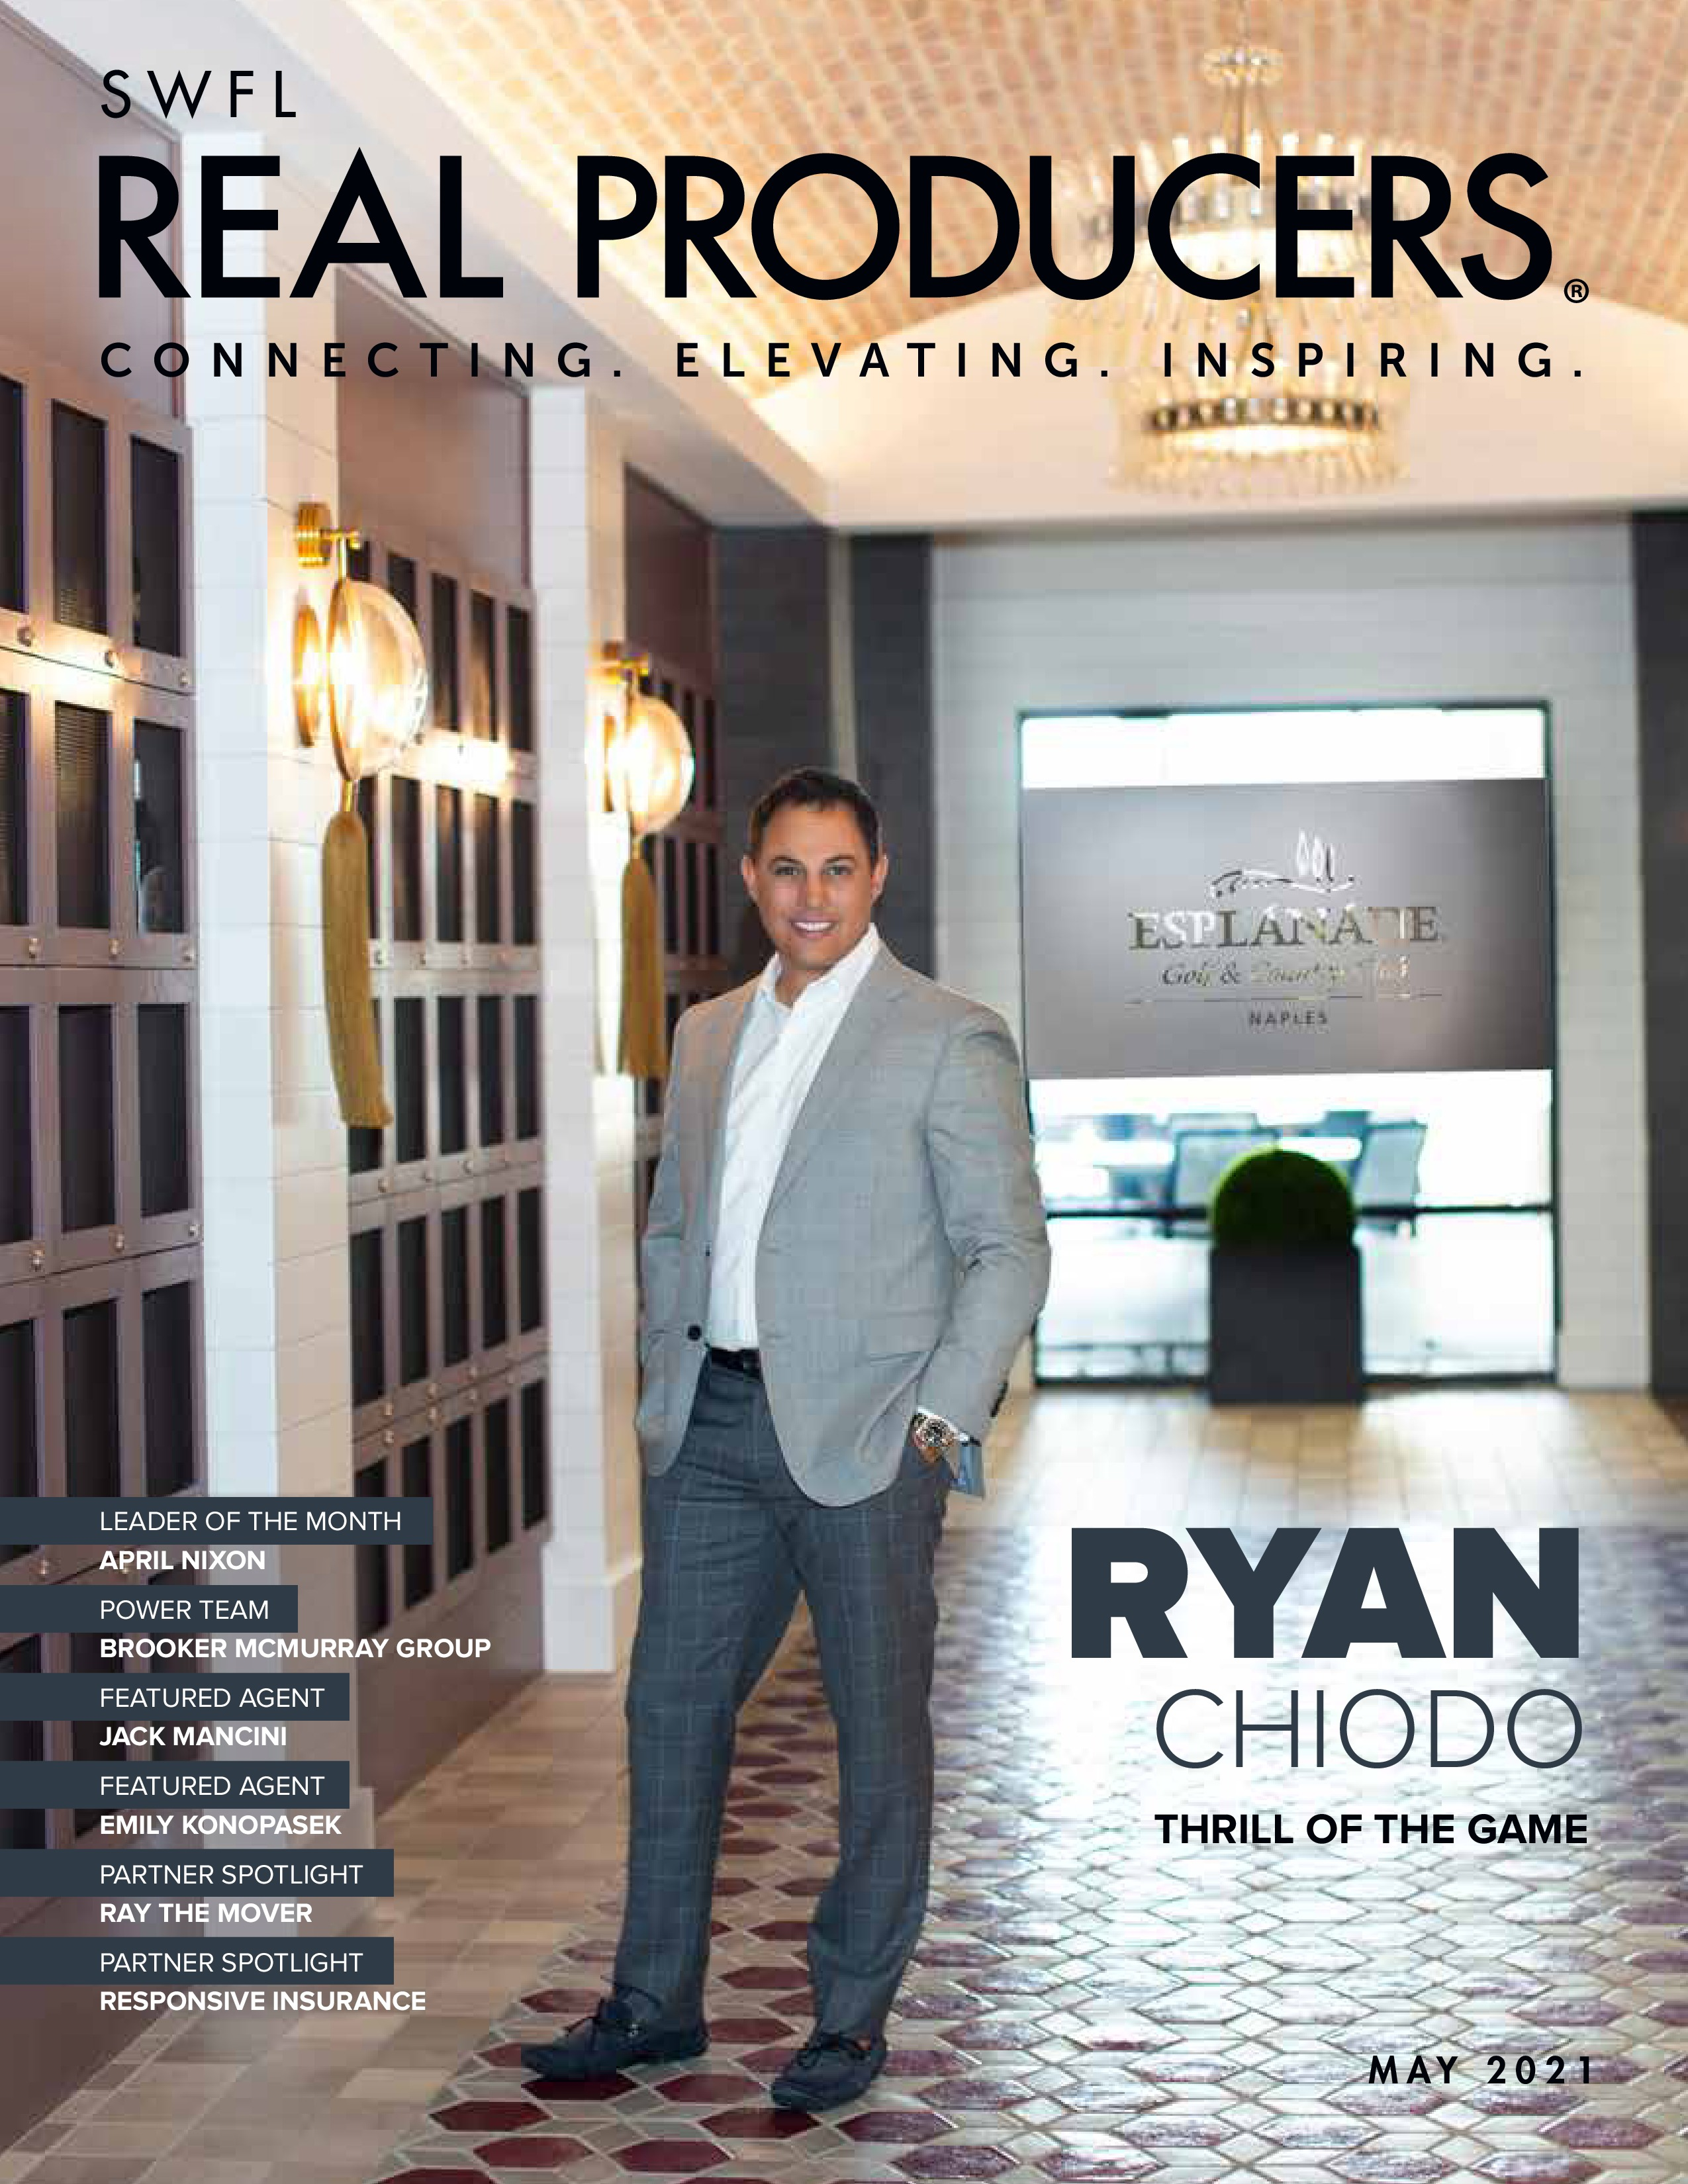 SWFL Real Producers 2021-05-01